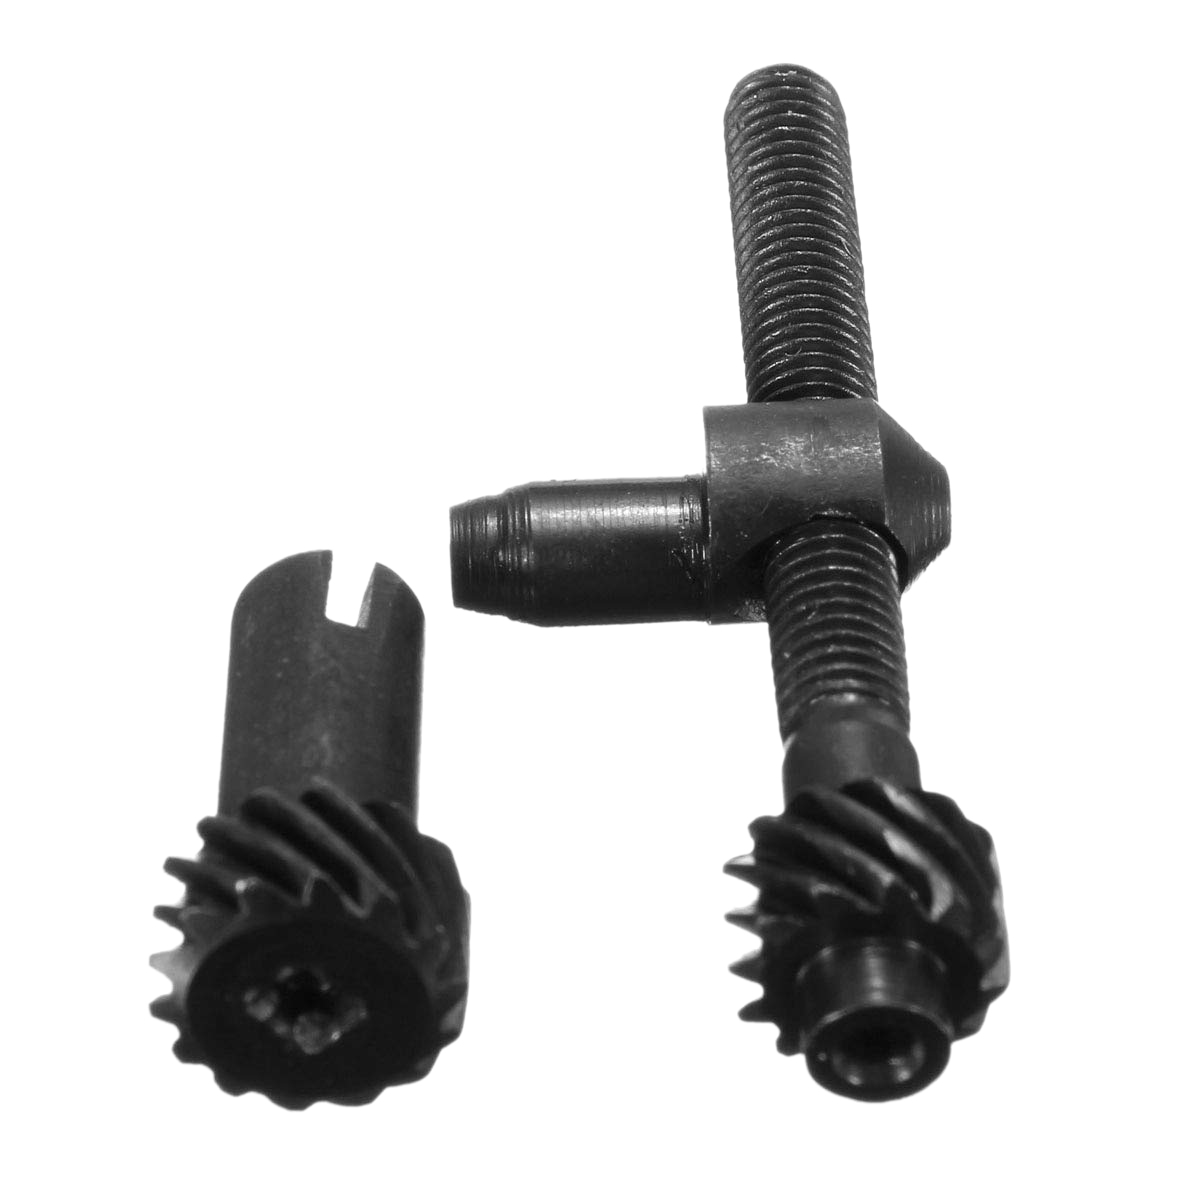 Chain Adjuster Tensioner Screw For Timberpro Lawnflite Chinese Chainsaw 2500 25cc